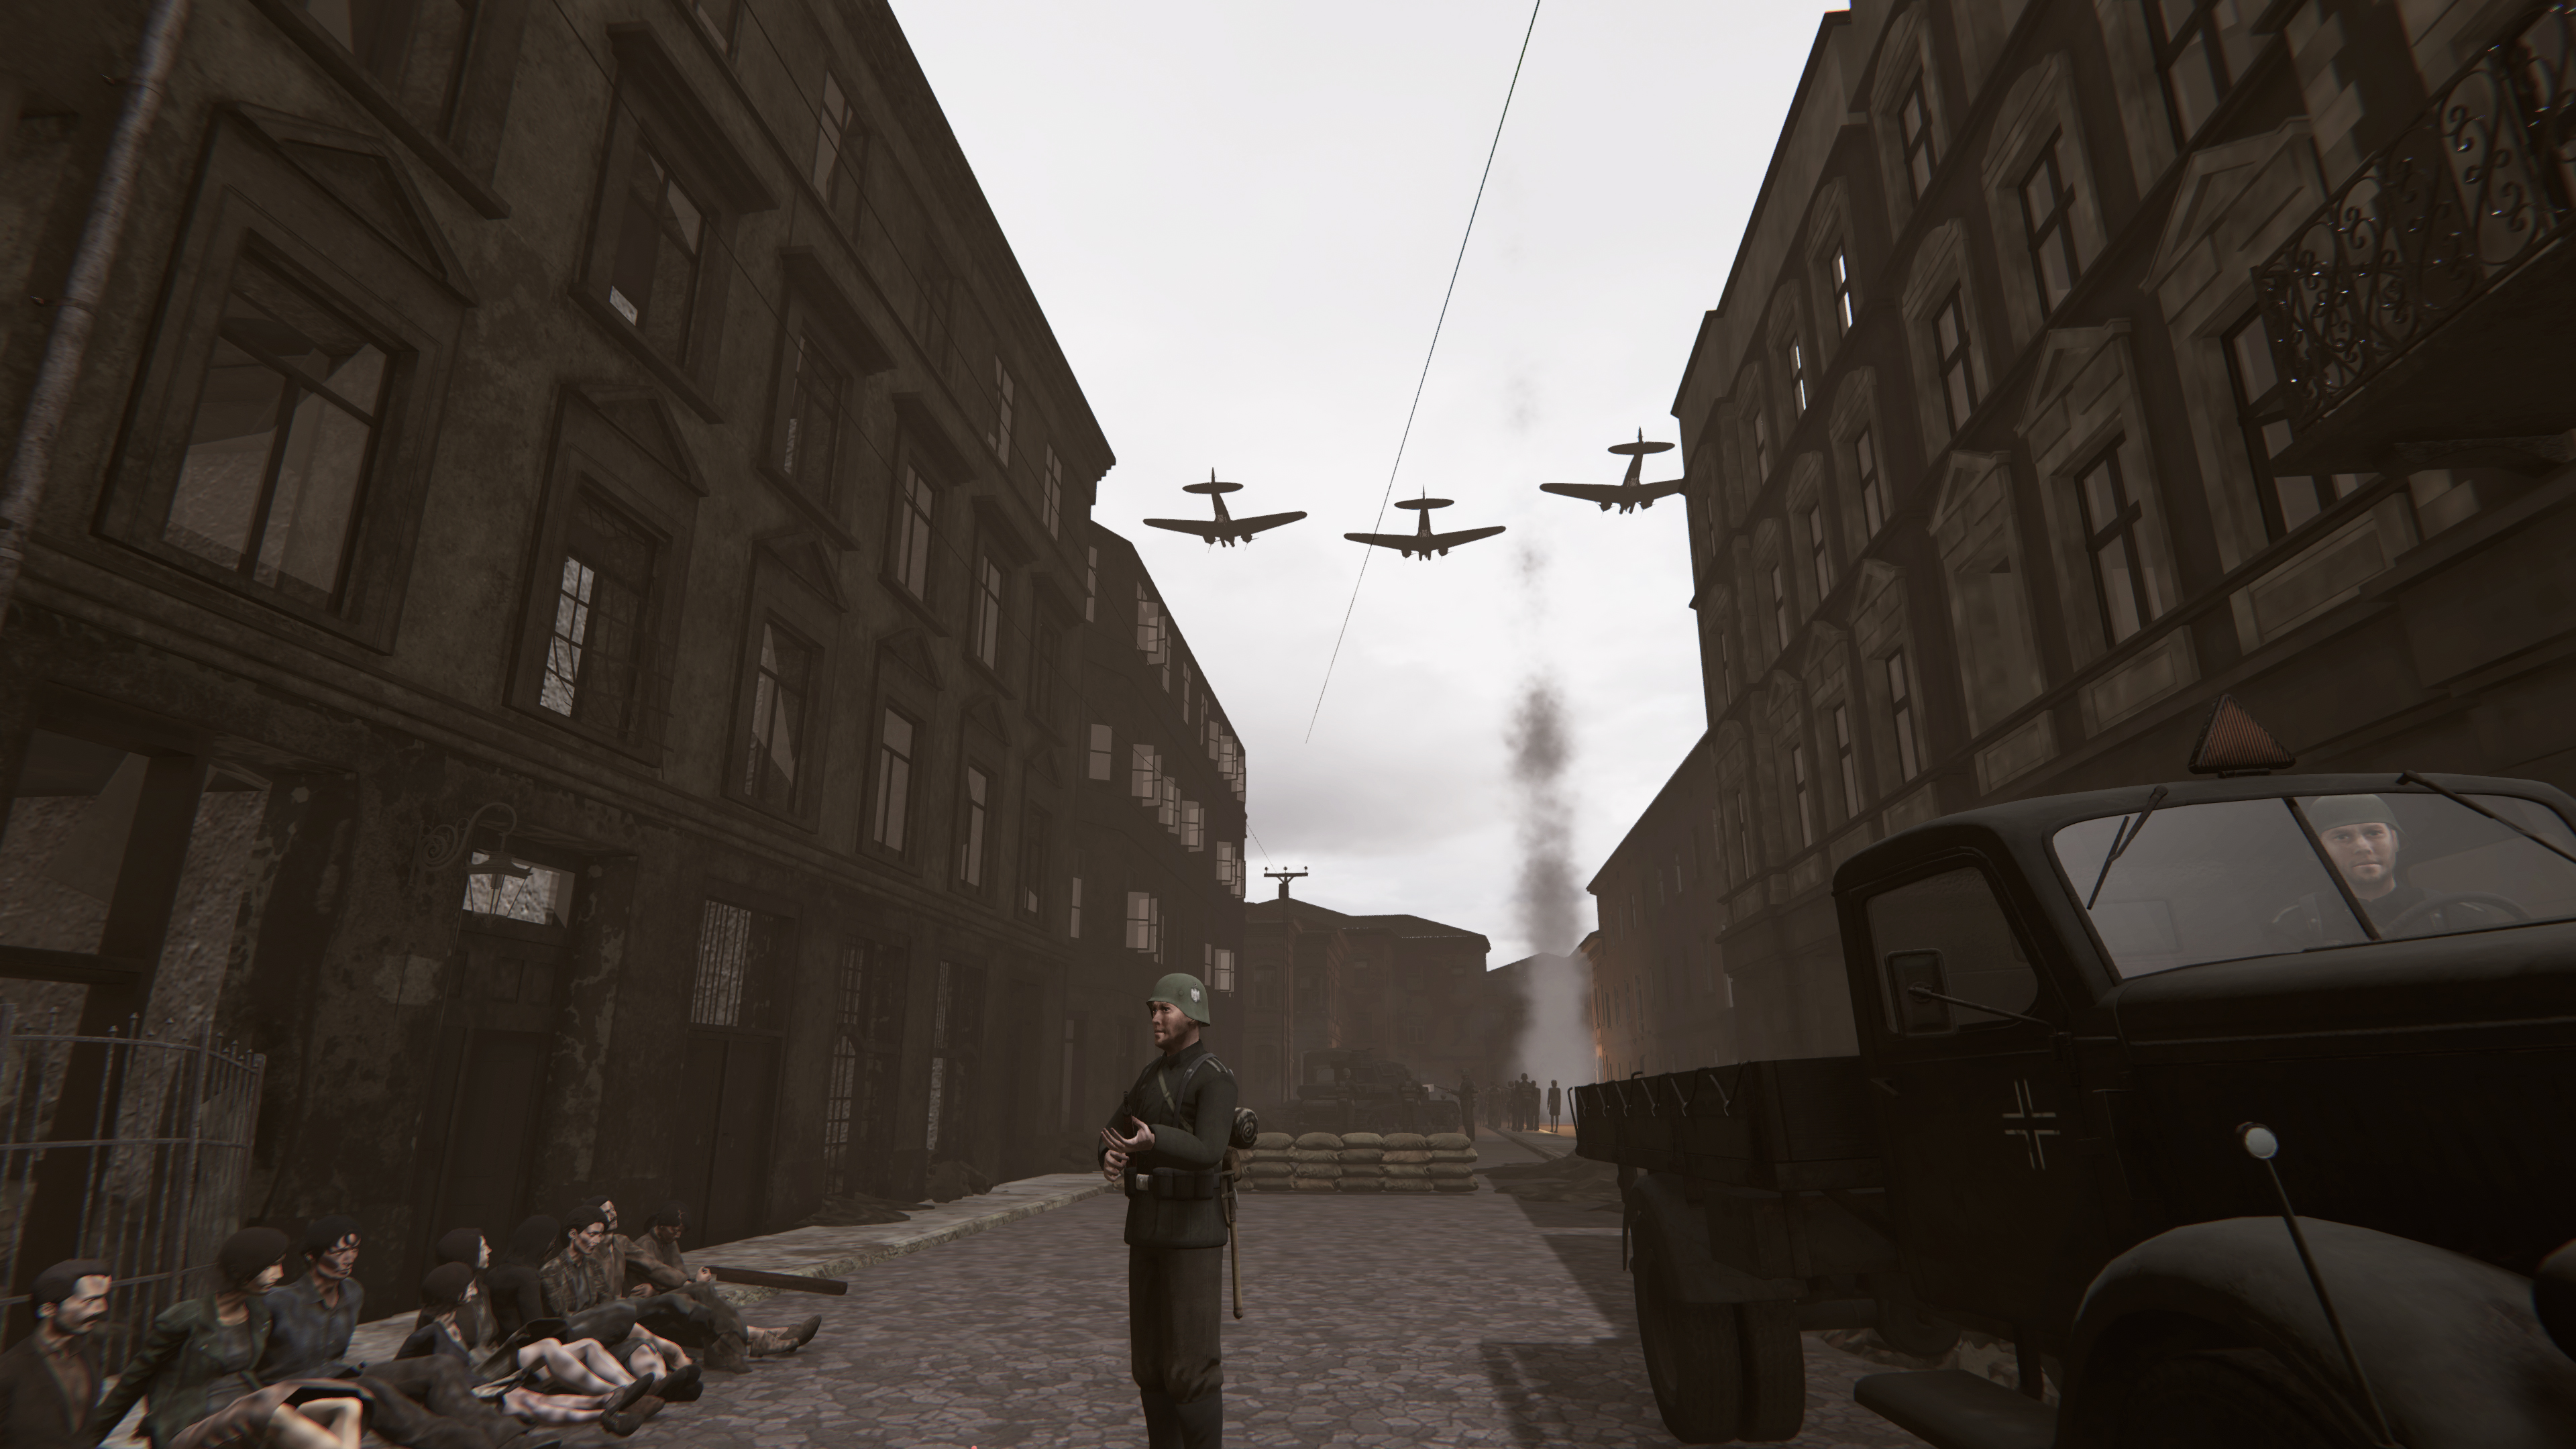 A VR image of a soldier standing in the street, with planes flying overhead.